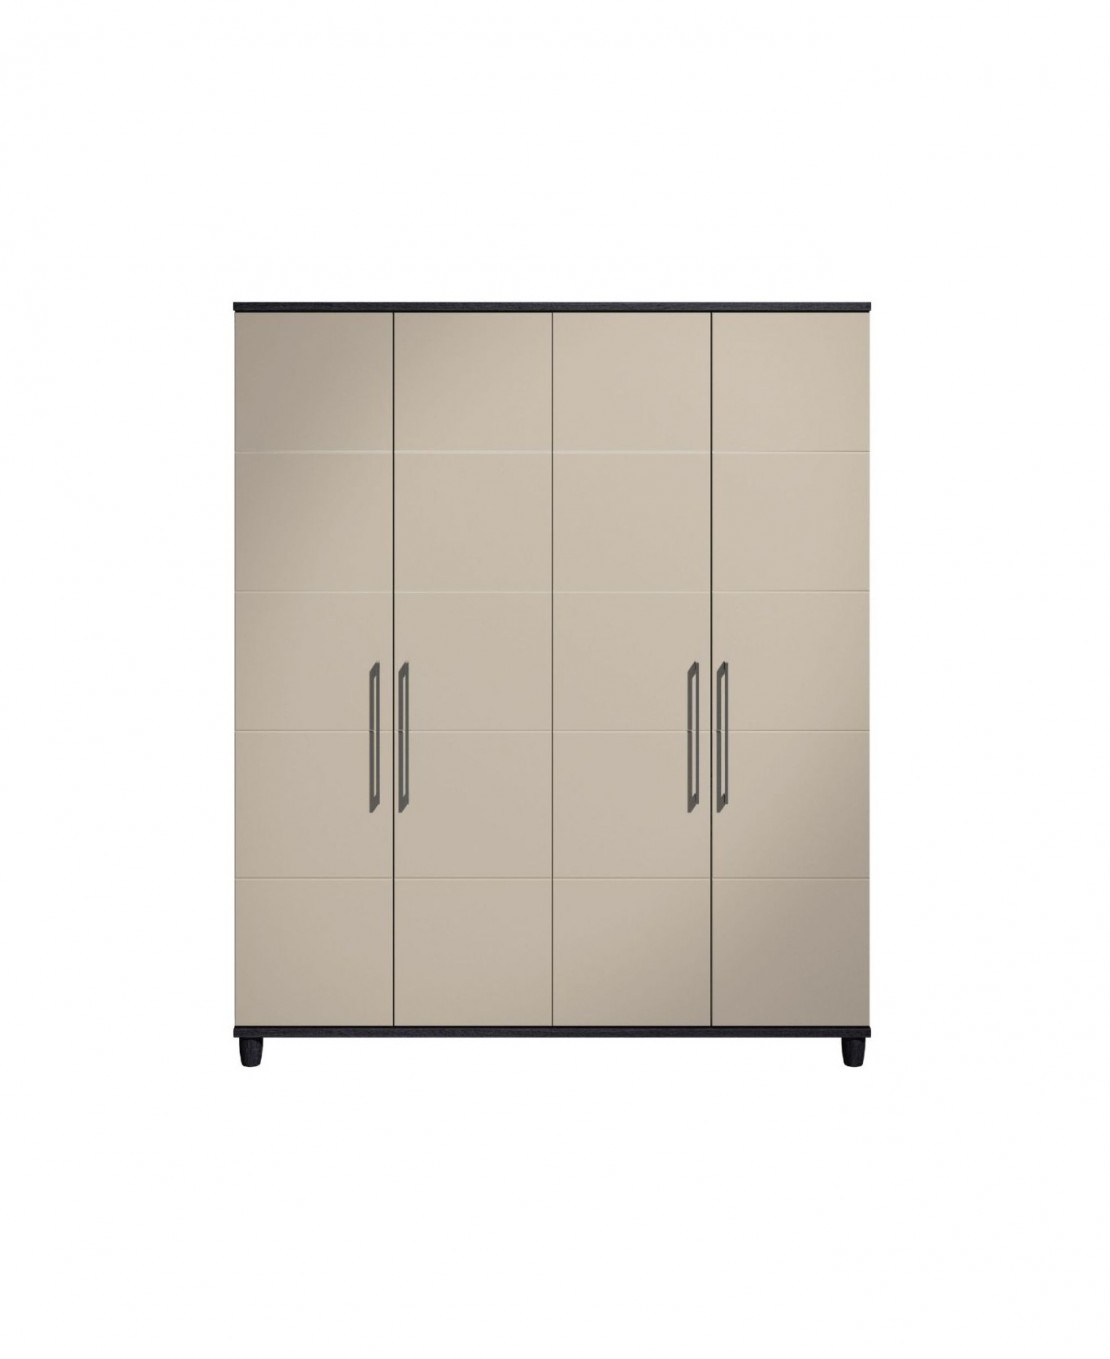 /_images/product-photos/kt-furniture-vardy-4-door-robe-grey-a.jpg